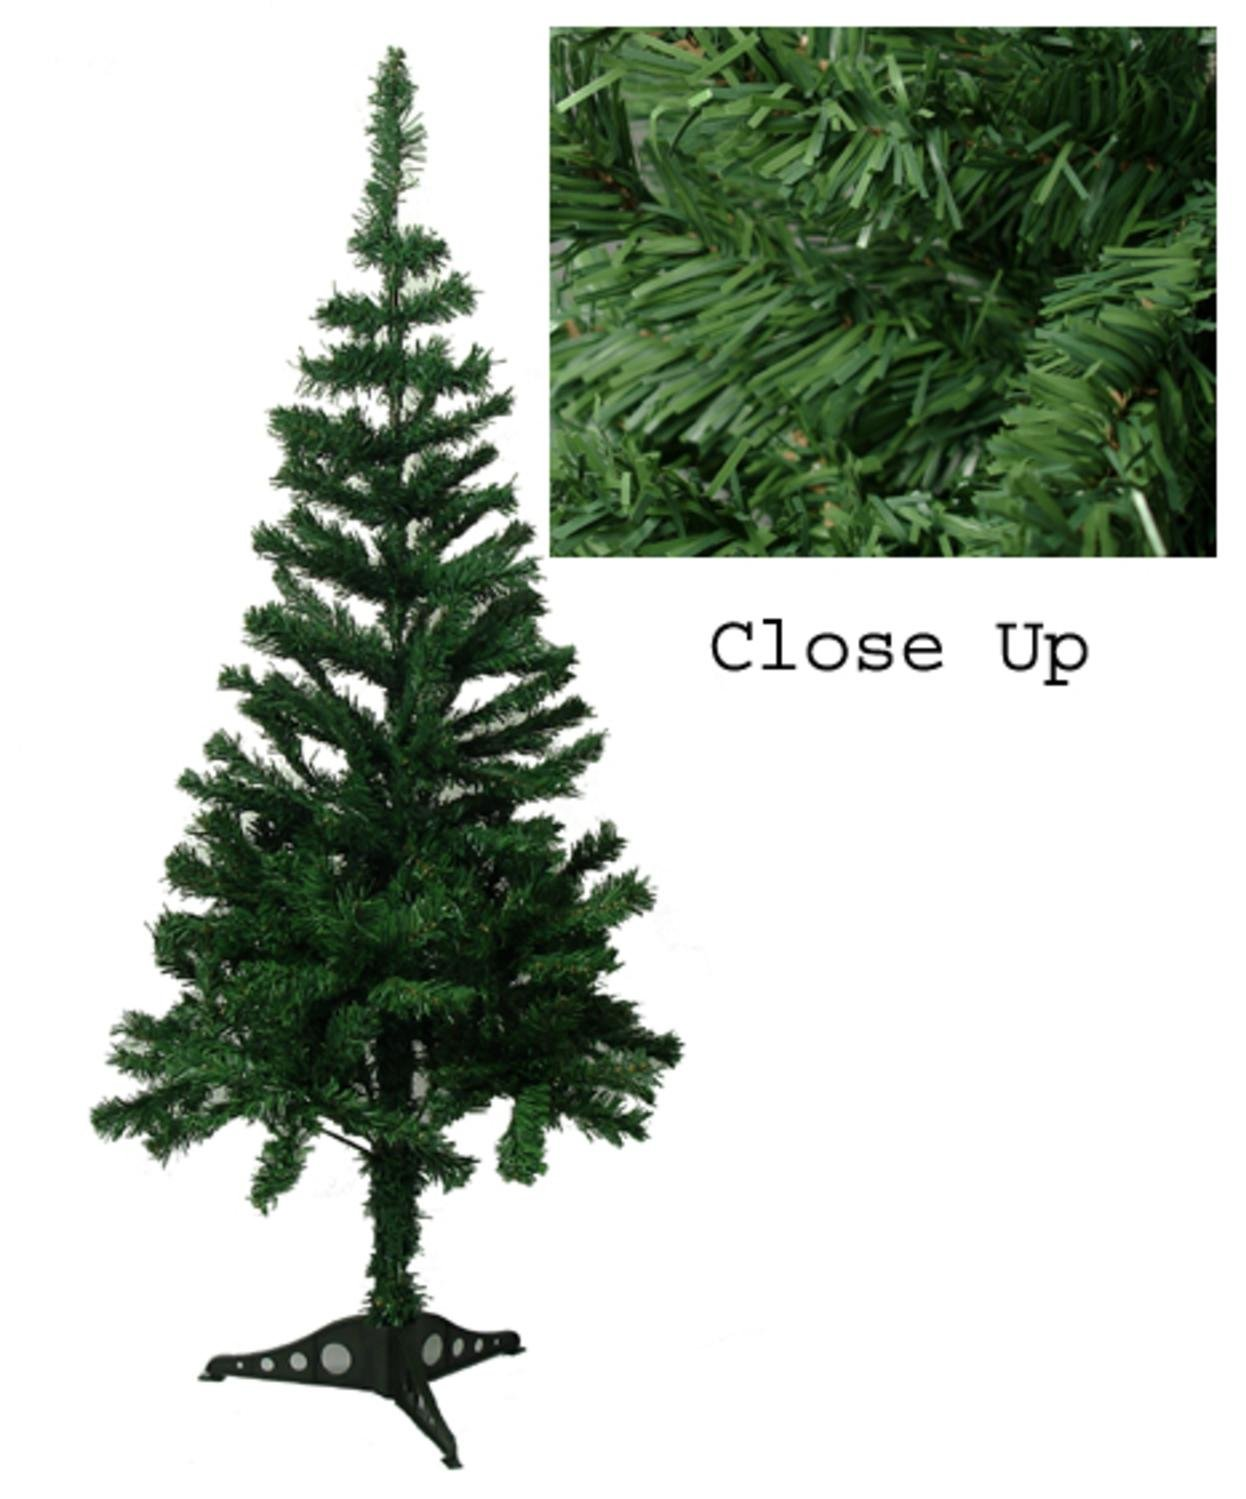 Amazon.com: 4' Charlie Pine Artificial Christmas Tree - Unlit ...